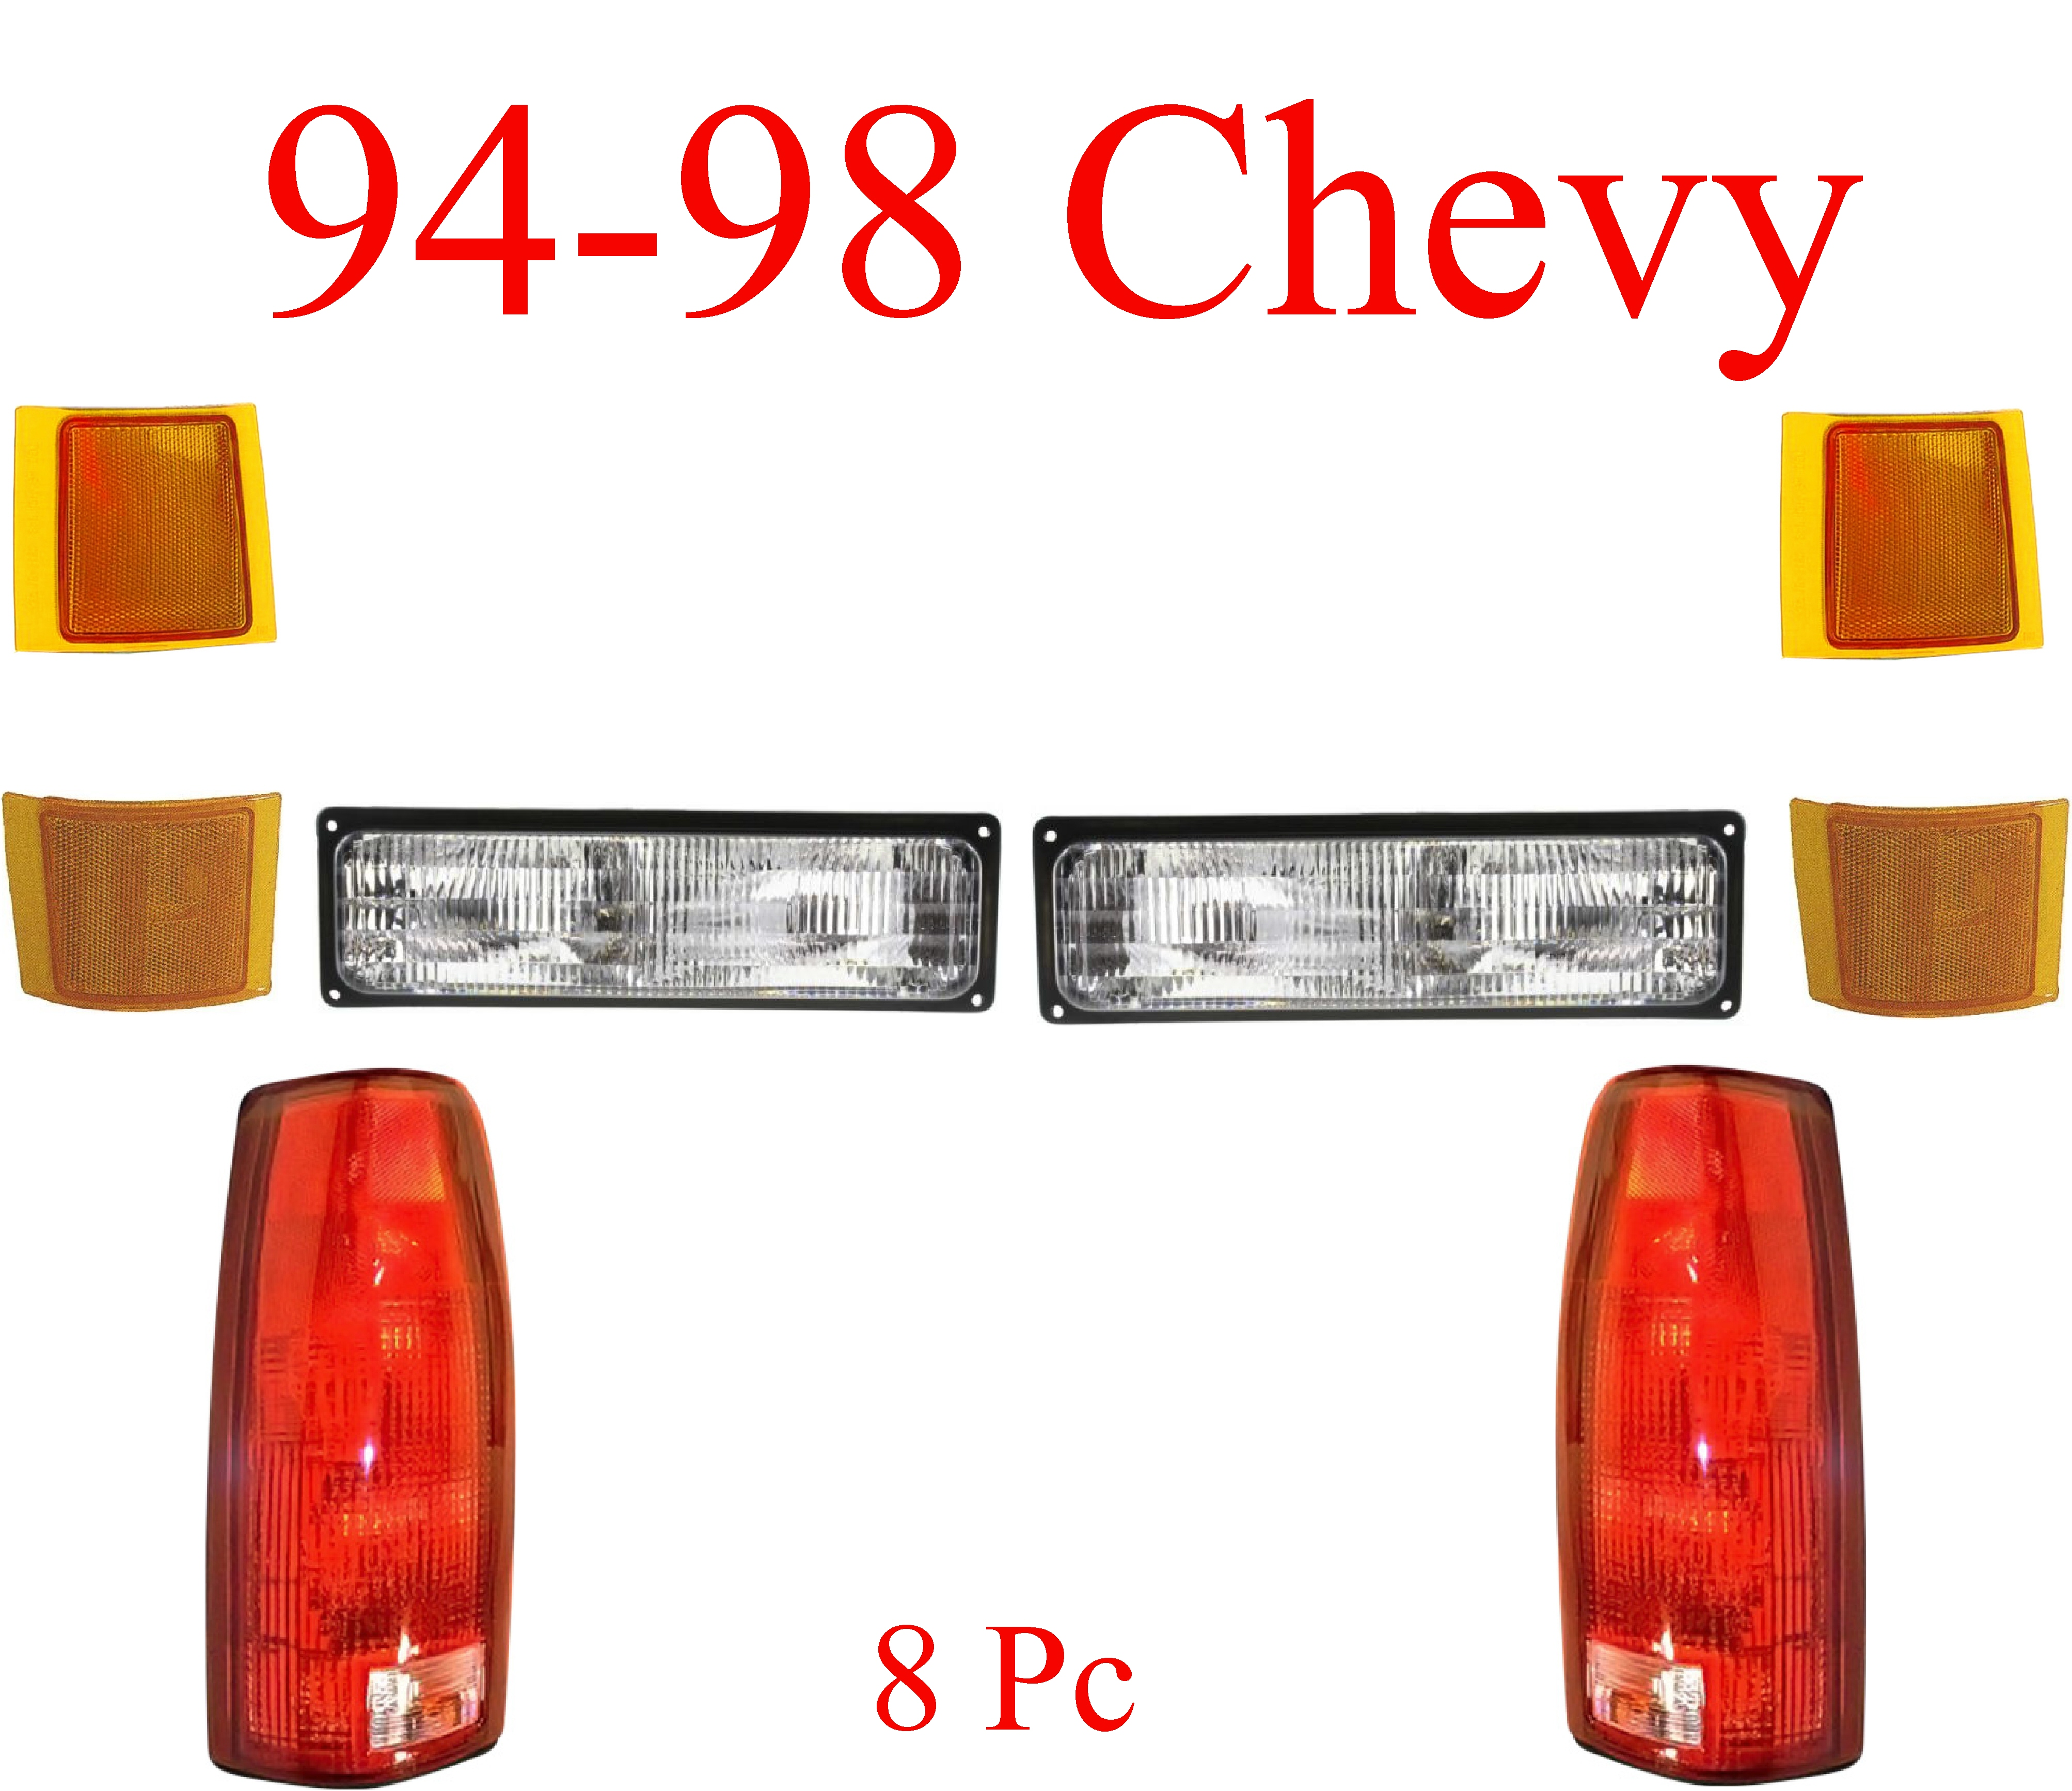 94-98 Chevy 8Pc Tail Light Kit Front & Rear